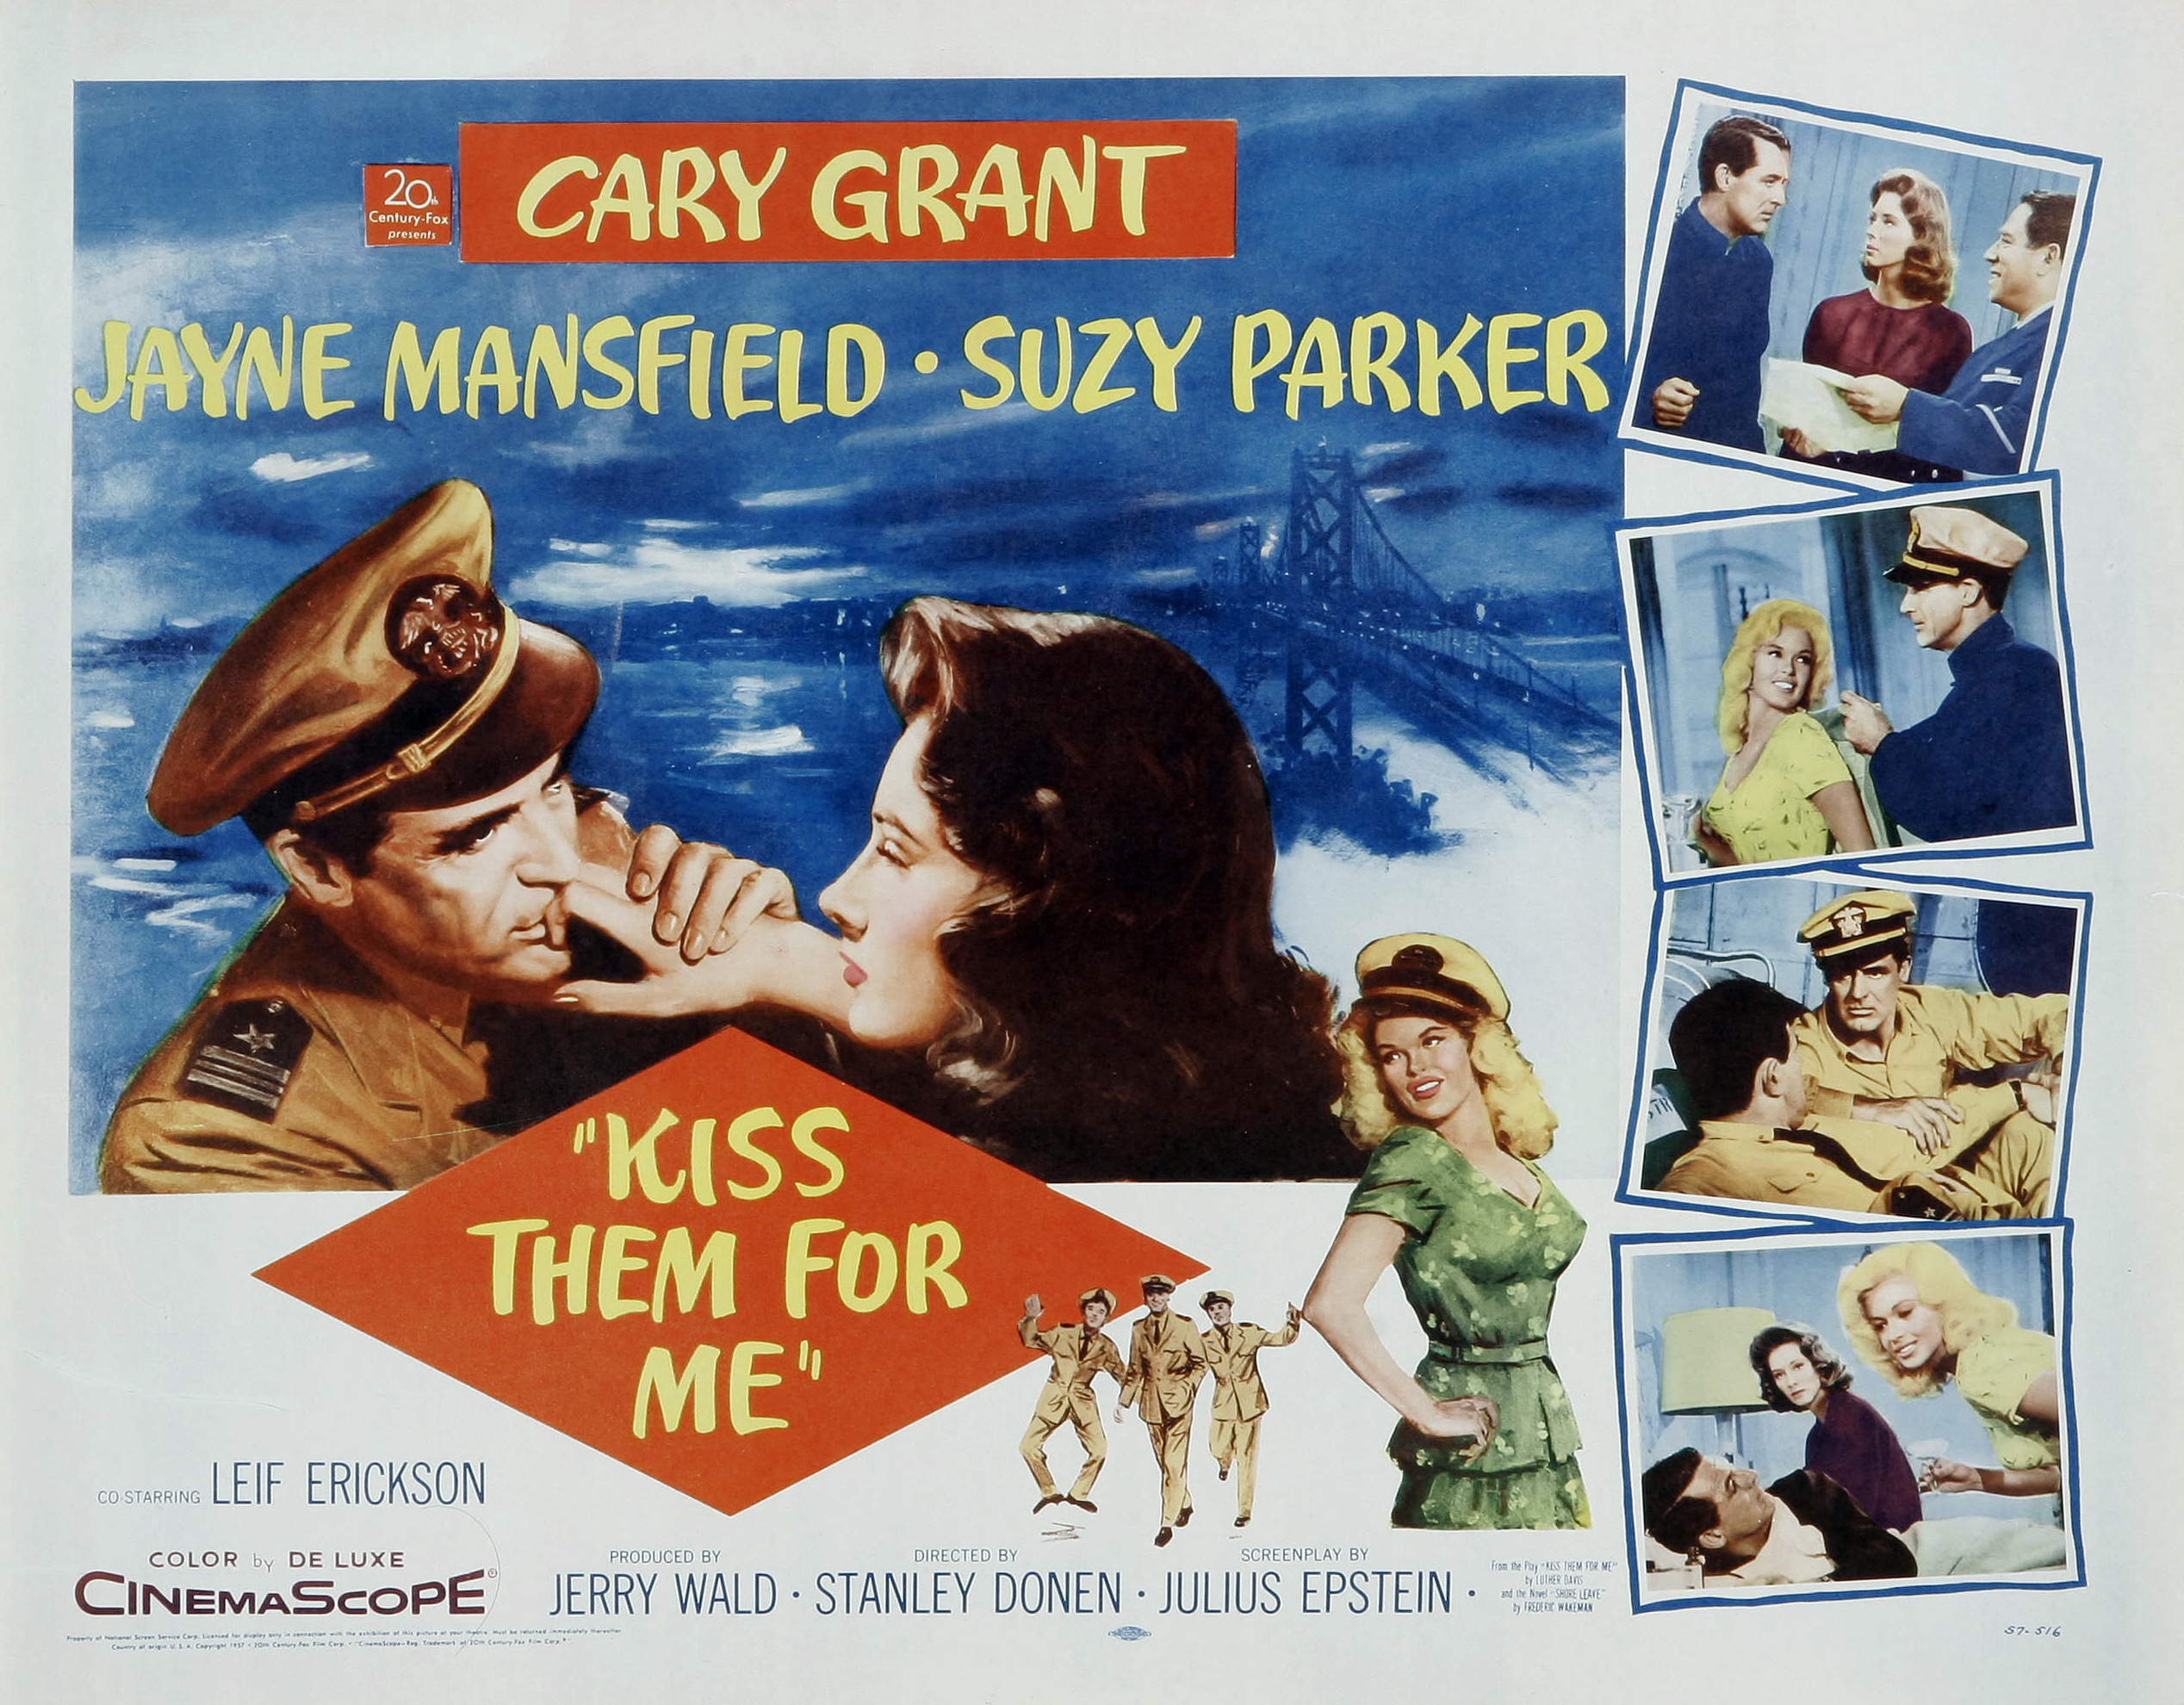 Cary Grant, Jayne Mansfield, and Suzy Parker in Kiss Them for Me (1957)